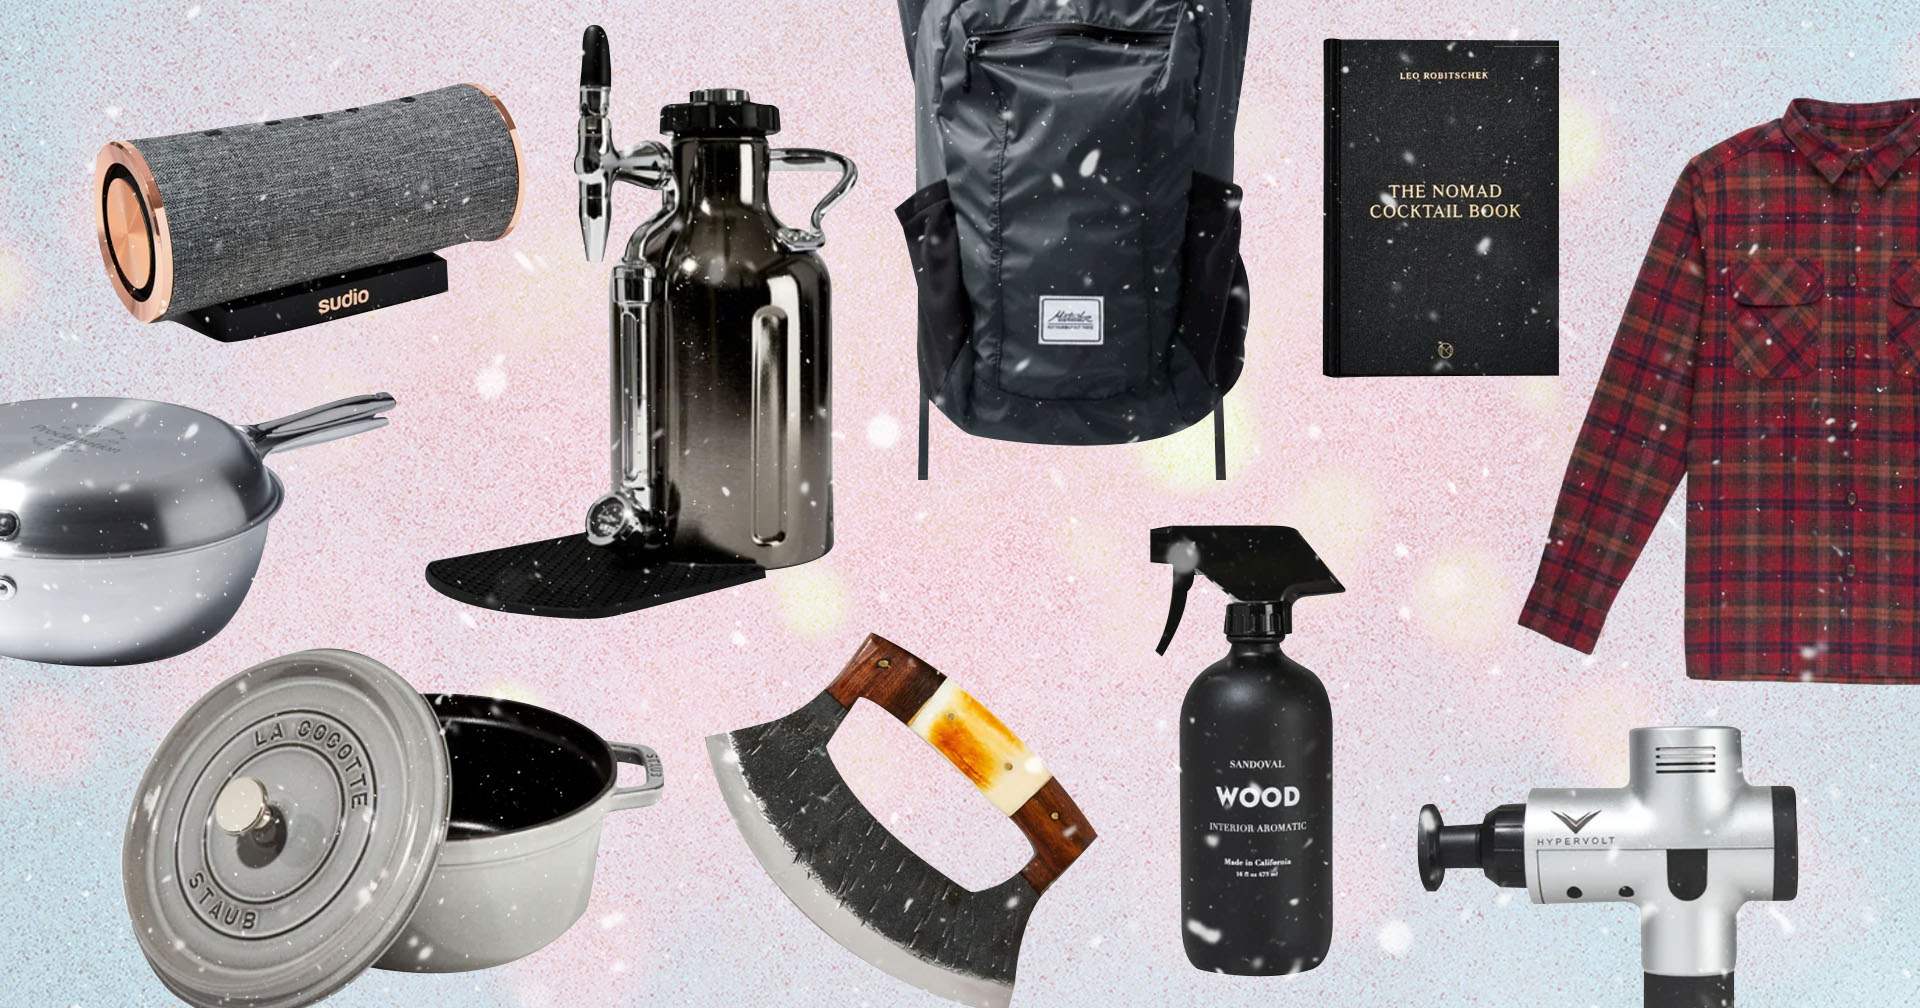 insidehook and bespoke post gift guide